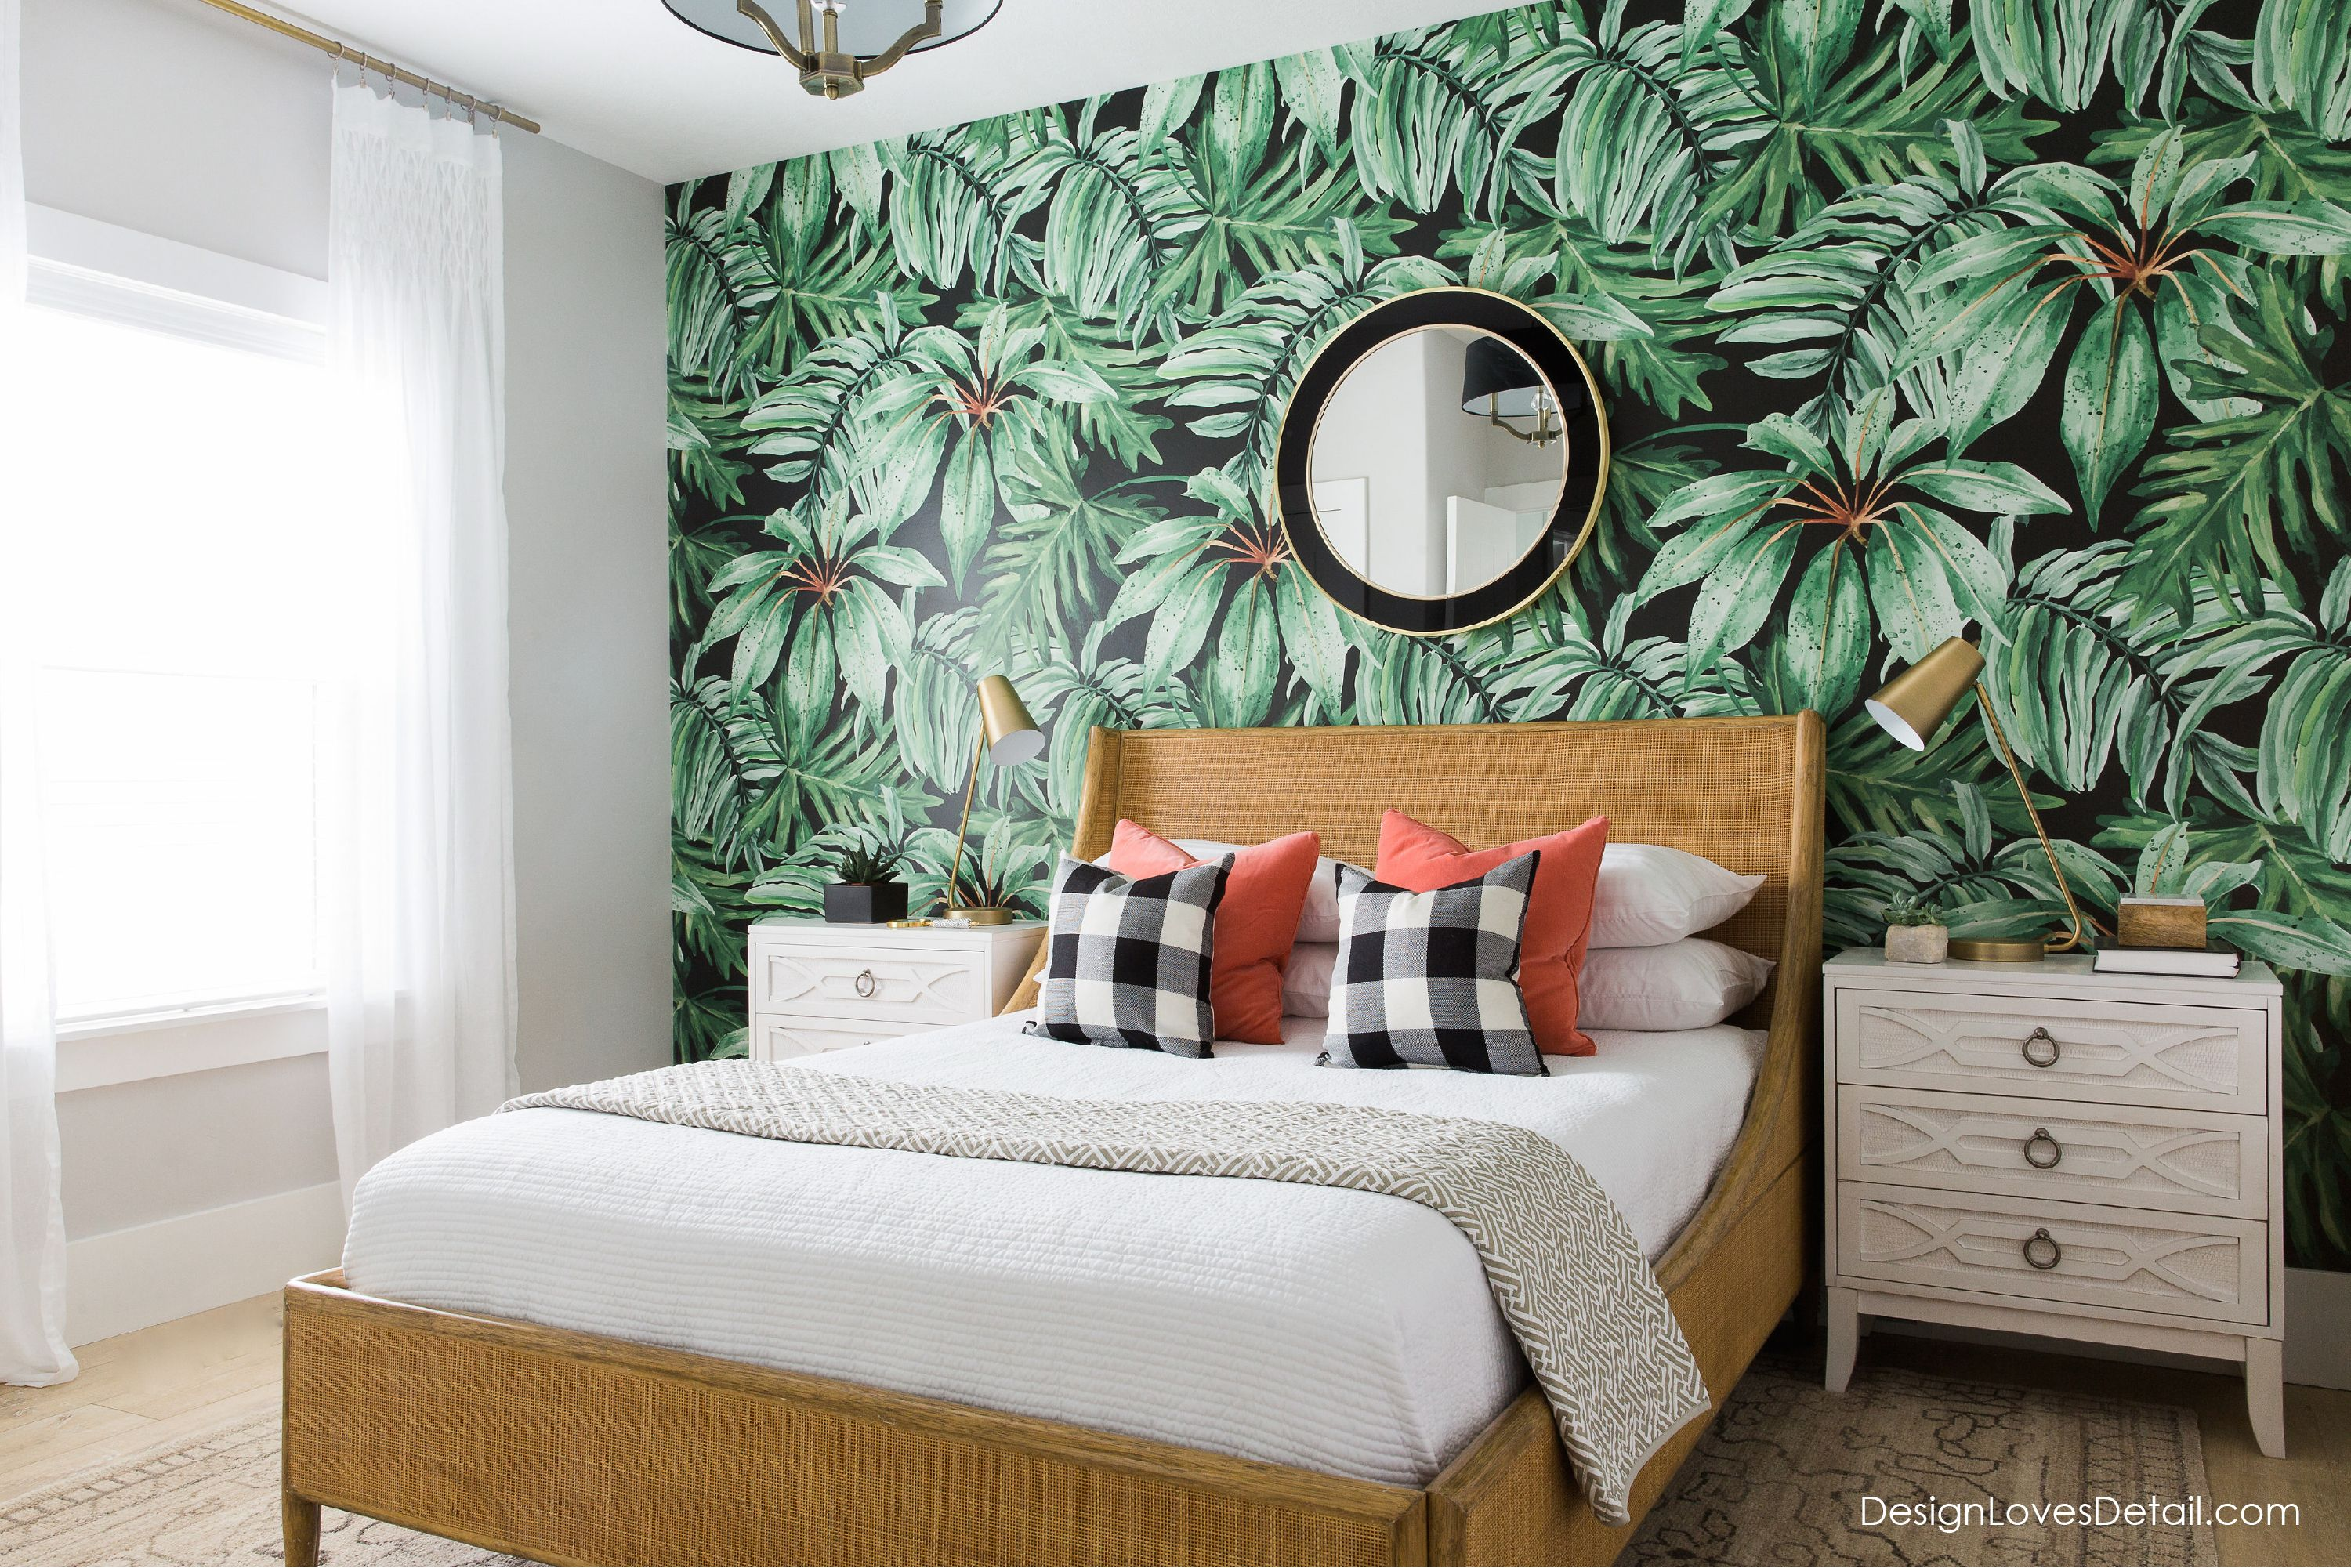 Coolest Rattan Cane Bed With Bamboo Tropical Bedroom Style With Mid